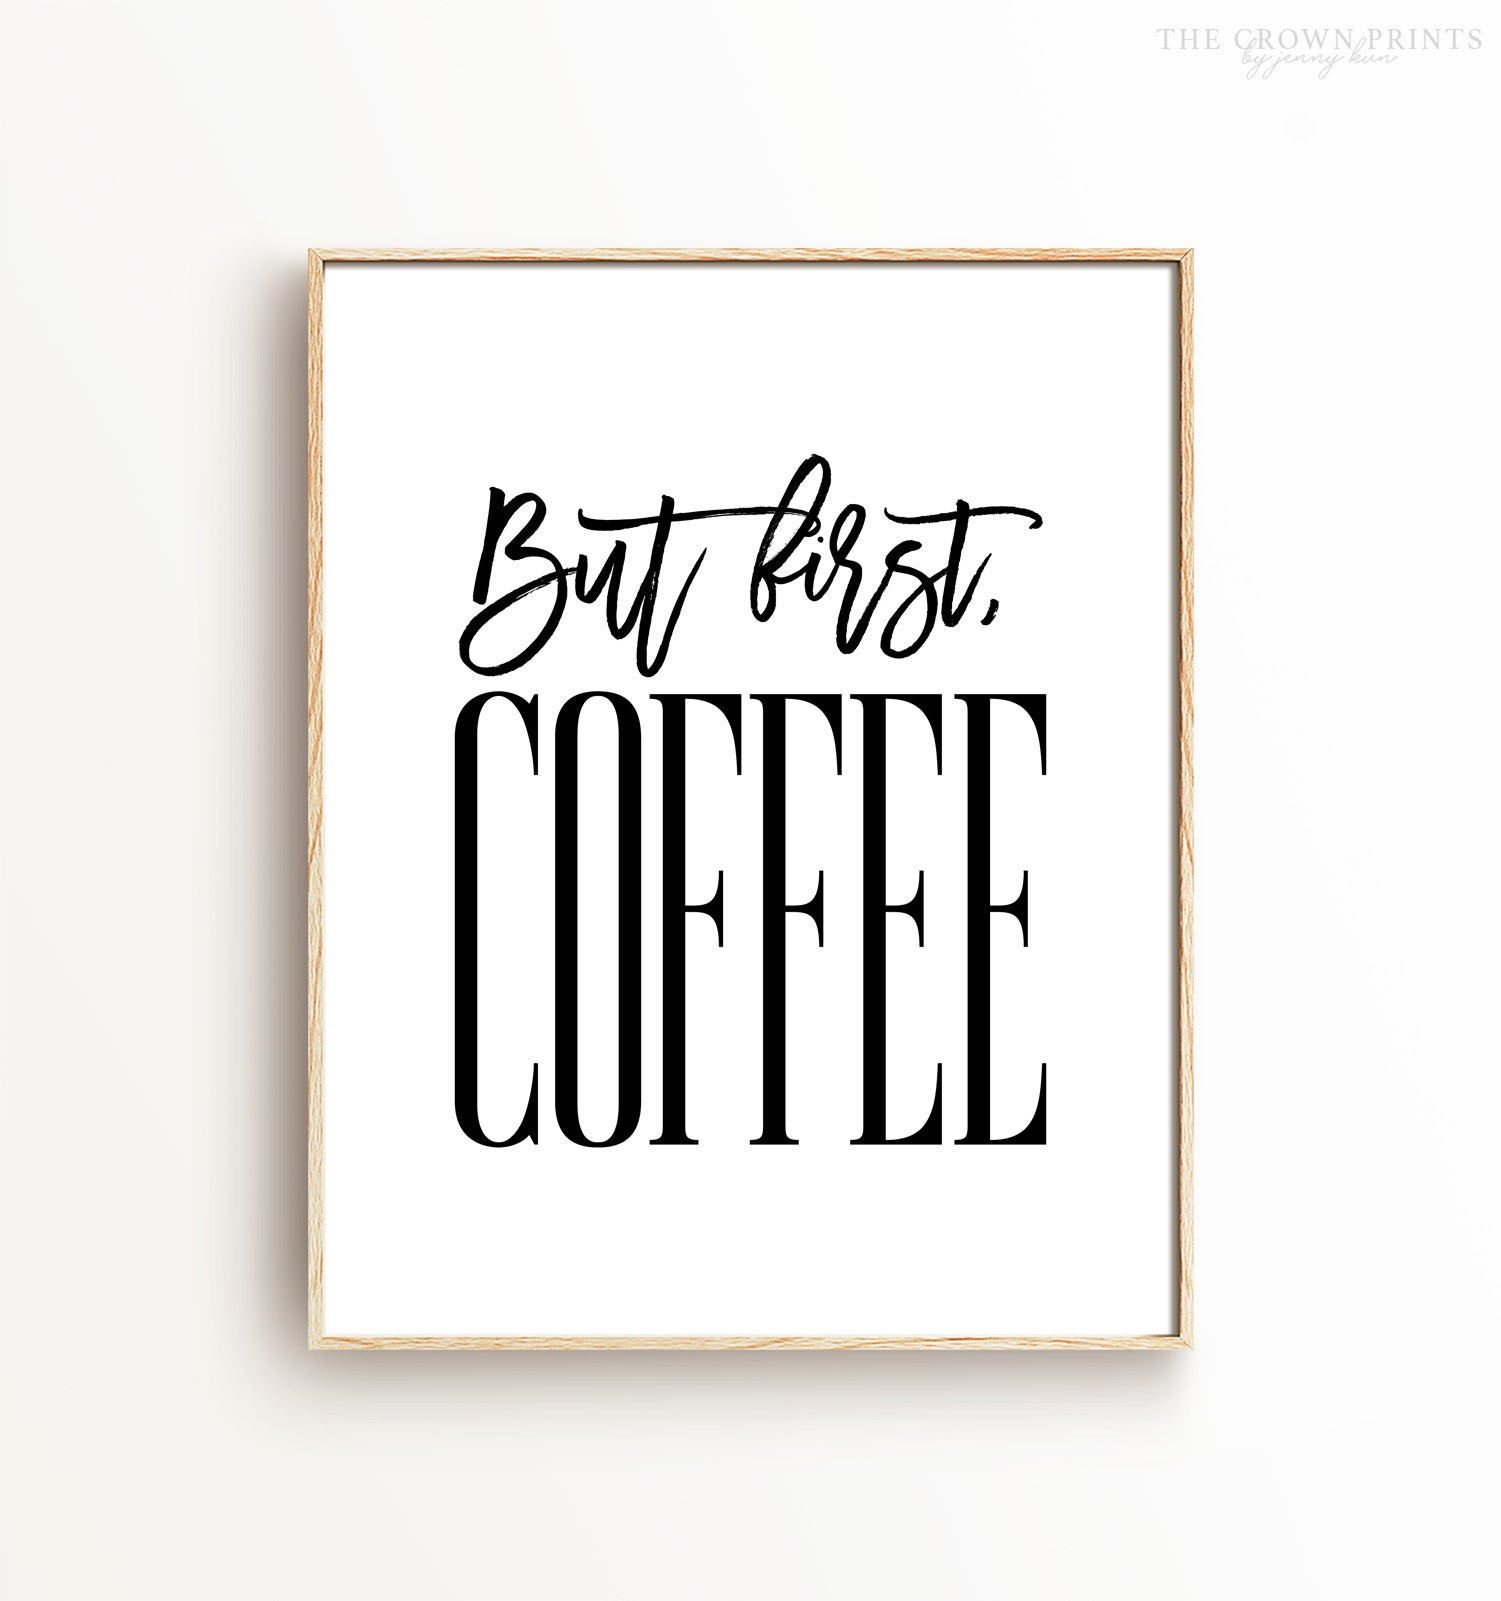 photograph regarding But First Coffee Free Printable identified as Artwork via Place - The Crown Prints